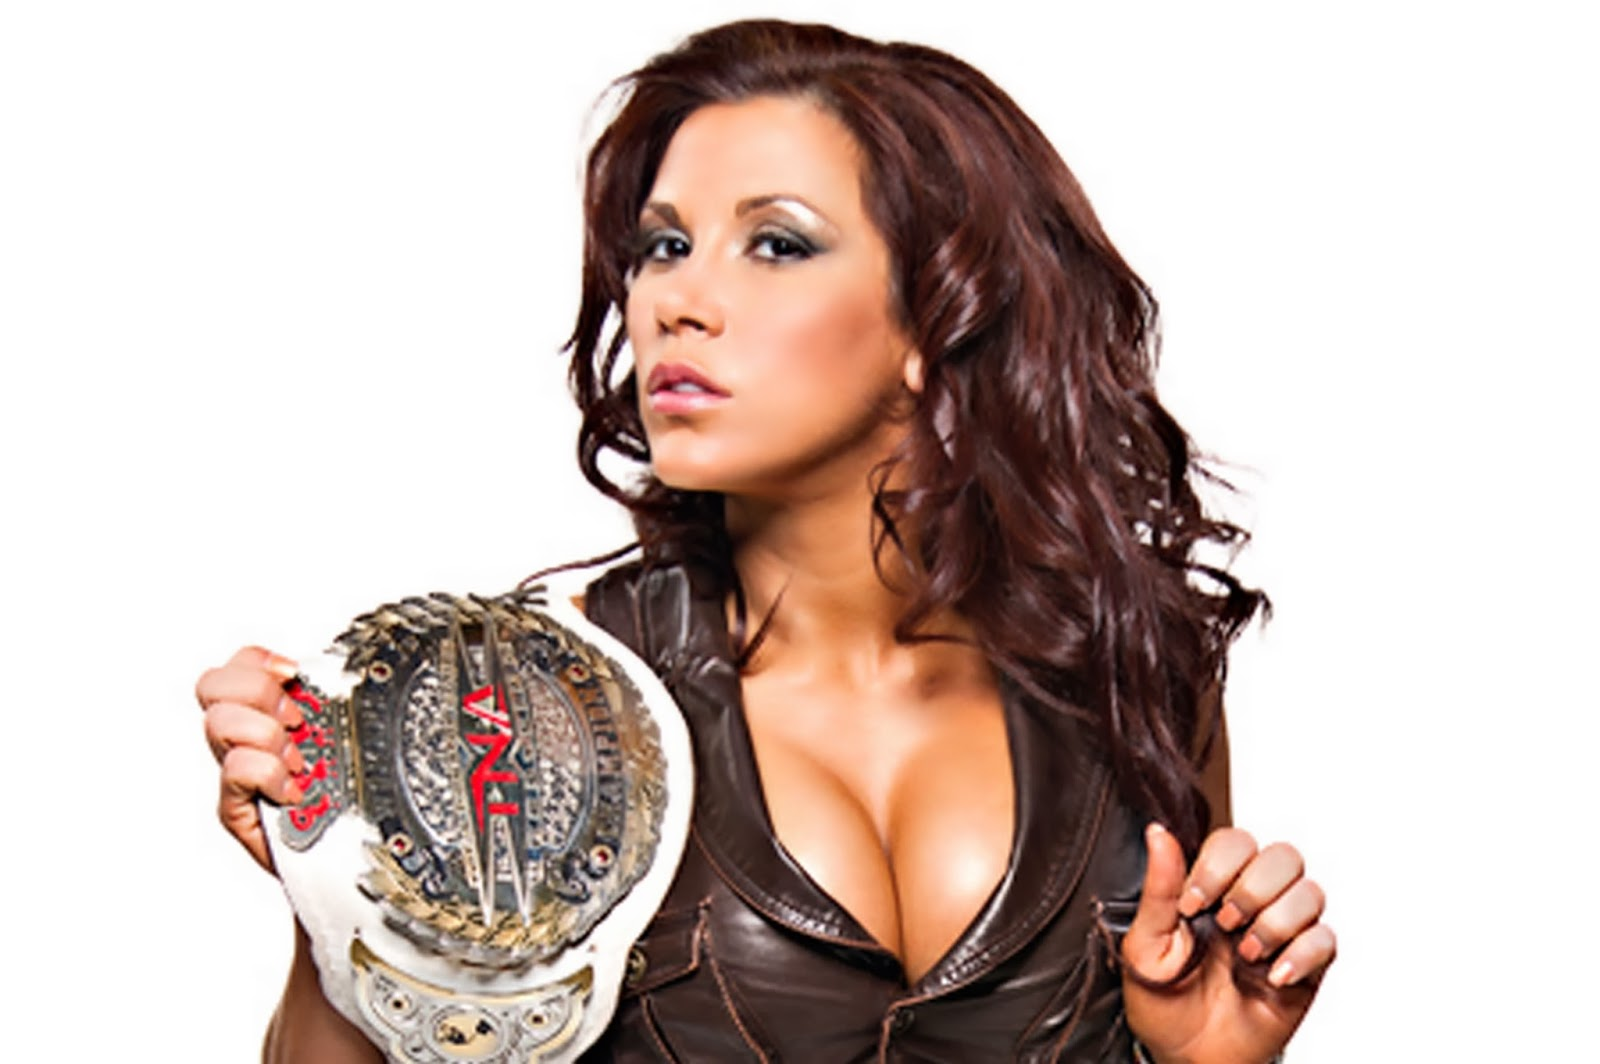 Mickie James Images FemaleCelebrity 1600x1064